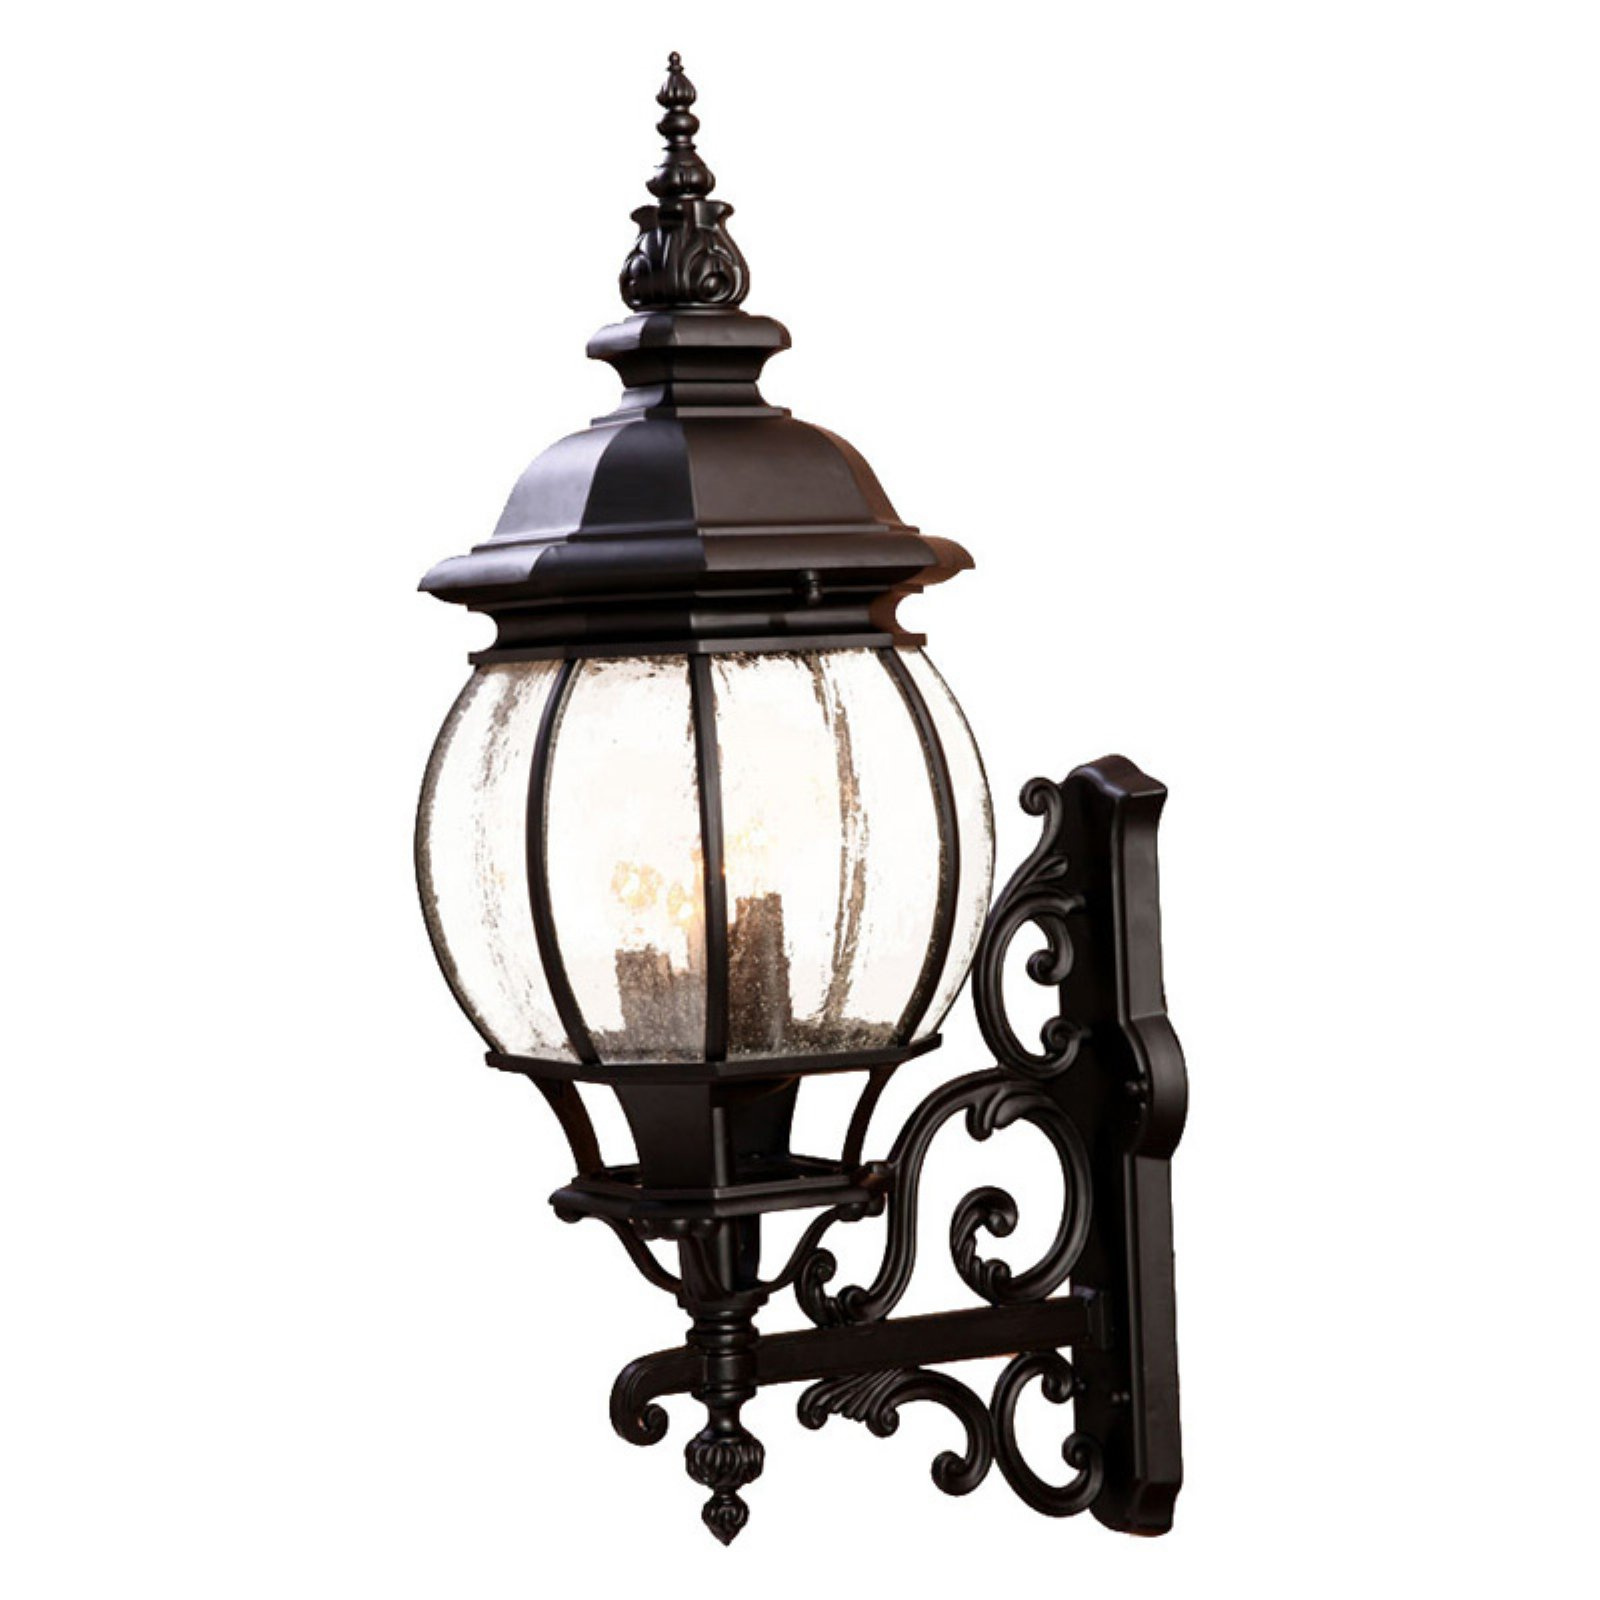 Acclaim Lighting Chateau 4 Light Outdoor Wall Mount Light Fixture